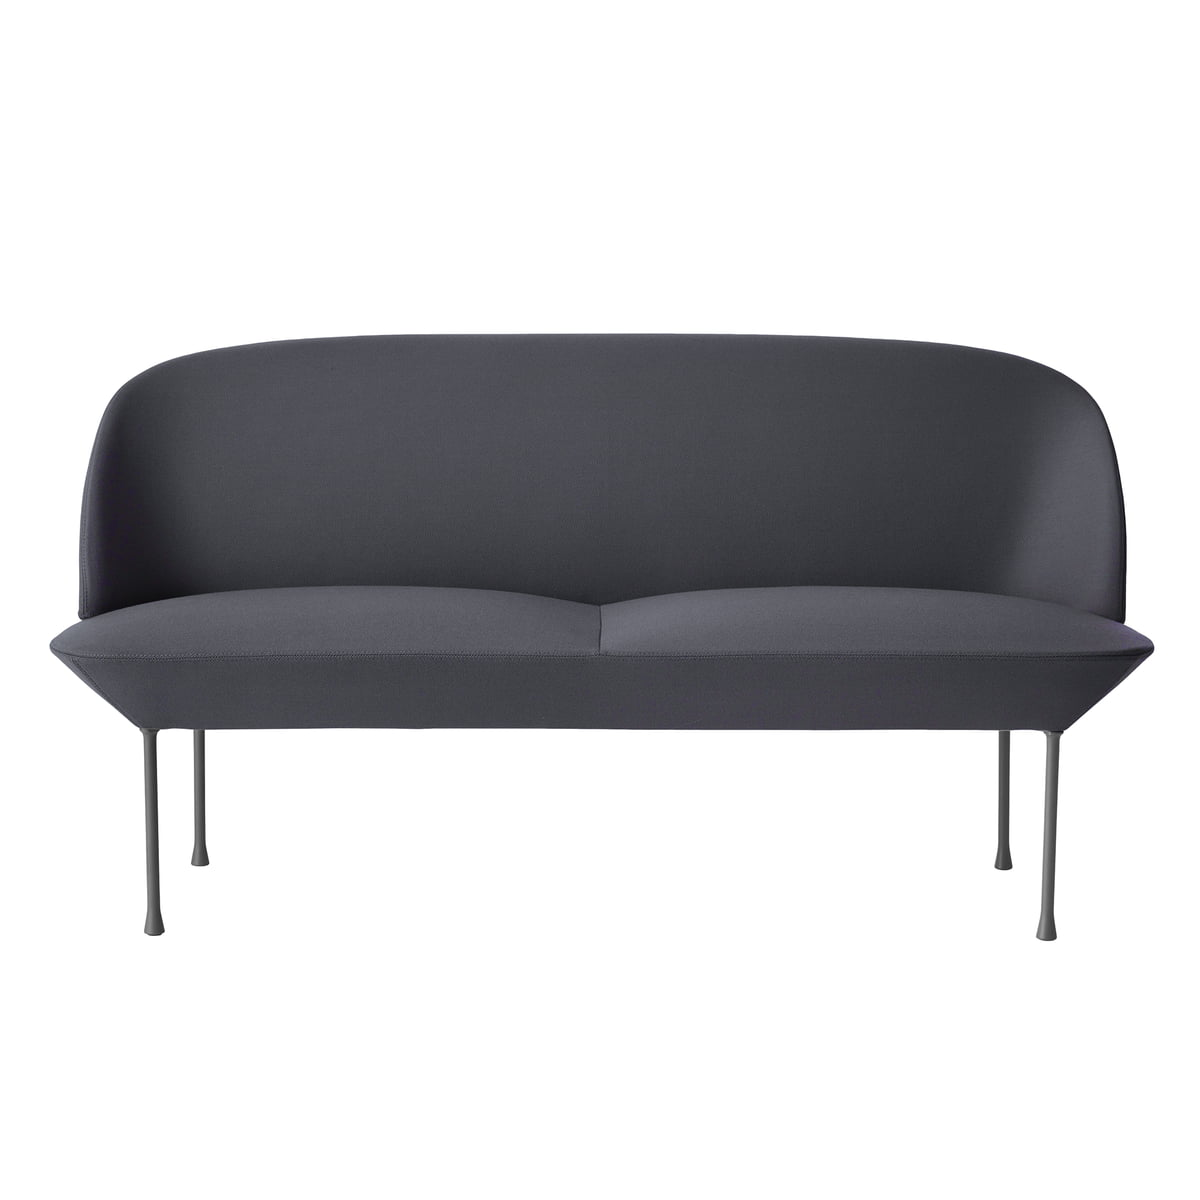 Lounge sofa 2 sitzer outdoor  The Oslo Sofa by Muuto in the shop